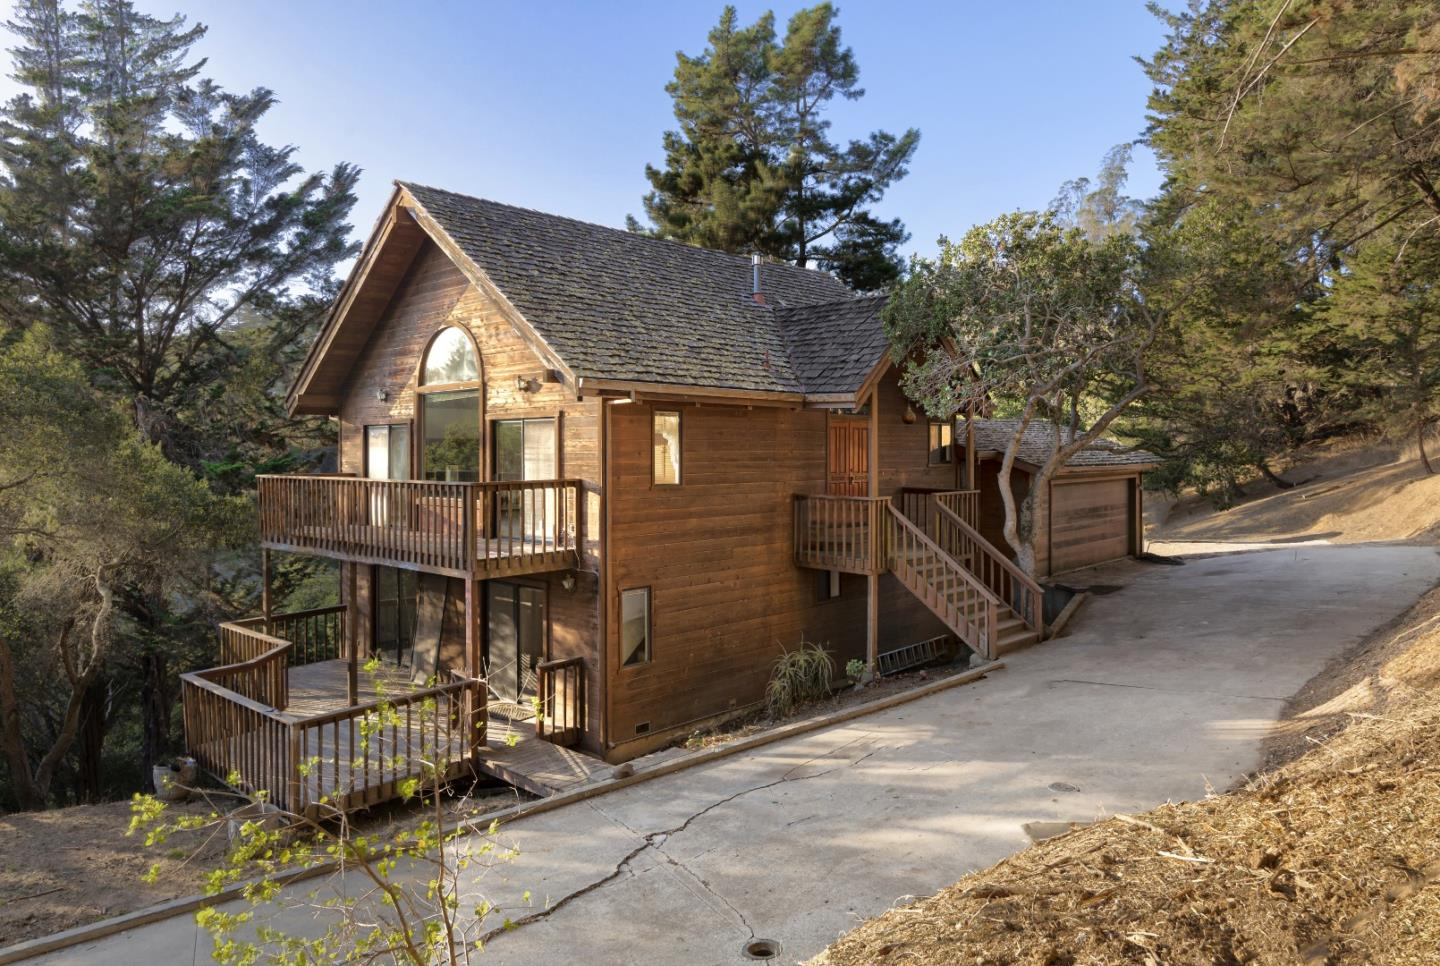 Tucked in the hills of Aptos Hills-Larkin Valley is a unique three story home waiting for a little bit of TLC. The foundation and framework are in good condition; a wonderful opportunity for someone to implement their design esthetic to truly make it their own.   Built in 1987, this single-owner home sits on a 6 acre lot and has 3 bedrooms and 3 bathrooms. Constructed in a reverse floor plan, the top entry level gives you the essence of a Lake Tahoe property with vaulted wood exposed ceilings, a loft area with a small bonus room attached, and large windows to view the beautiful surrounding trees. As you head down to the second floor, you will find all of the bedrooms with a master bedroom that includes an ensuite and reasonably sized closet. The third floor has a huge bonus room that could be the perfect playroom, game room, or whatever type of room you desire.  Other features include accent fireplaces, private driveway, and enclosed garage. A lot of land and house for a fair price!